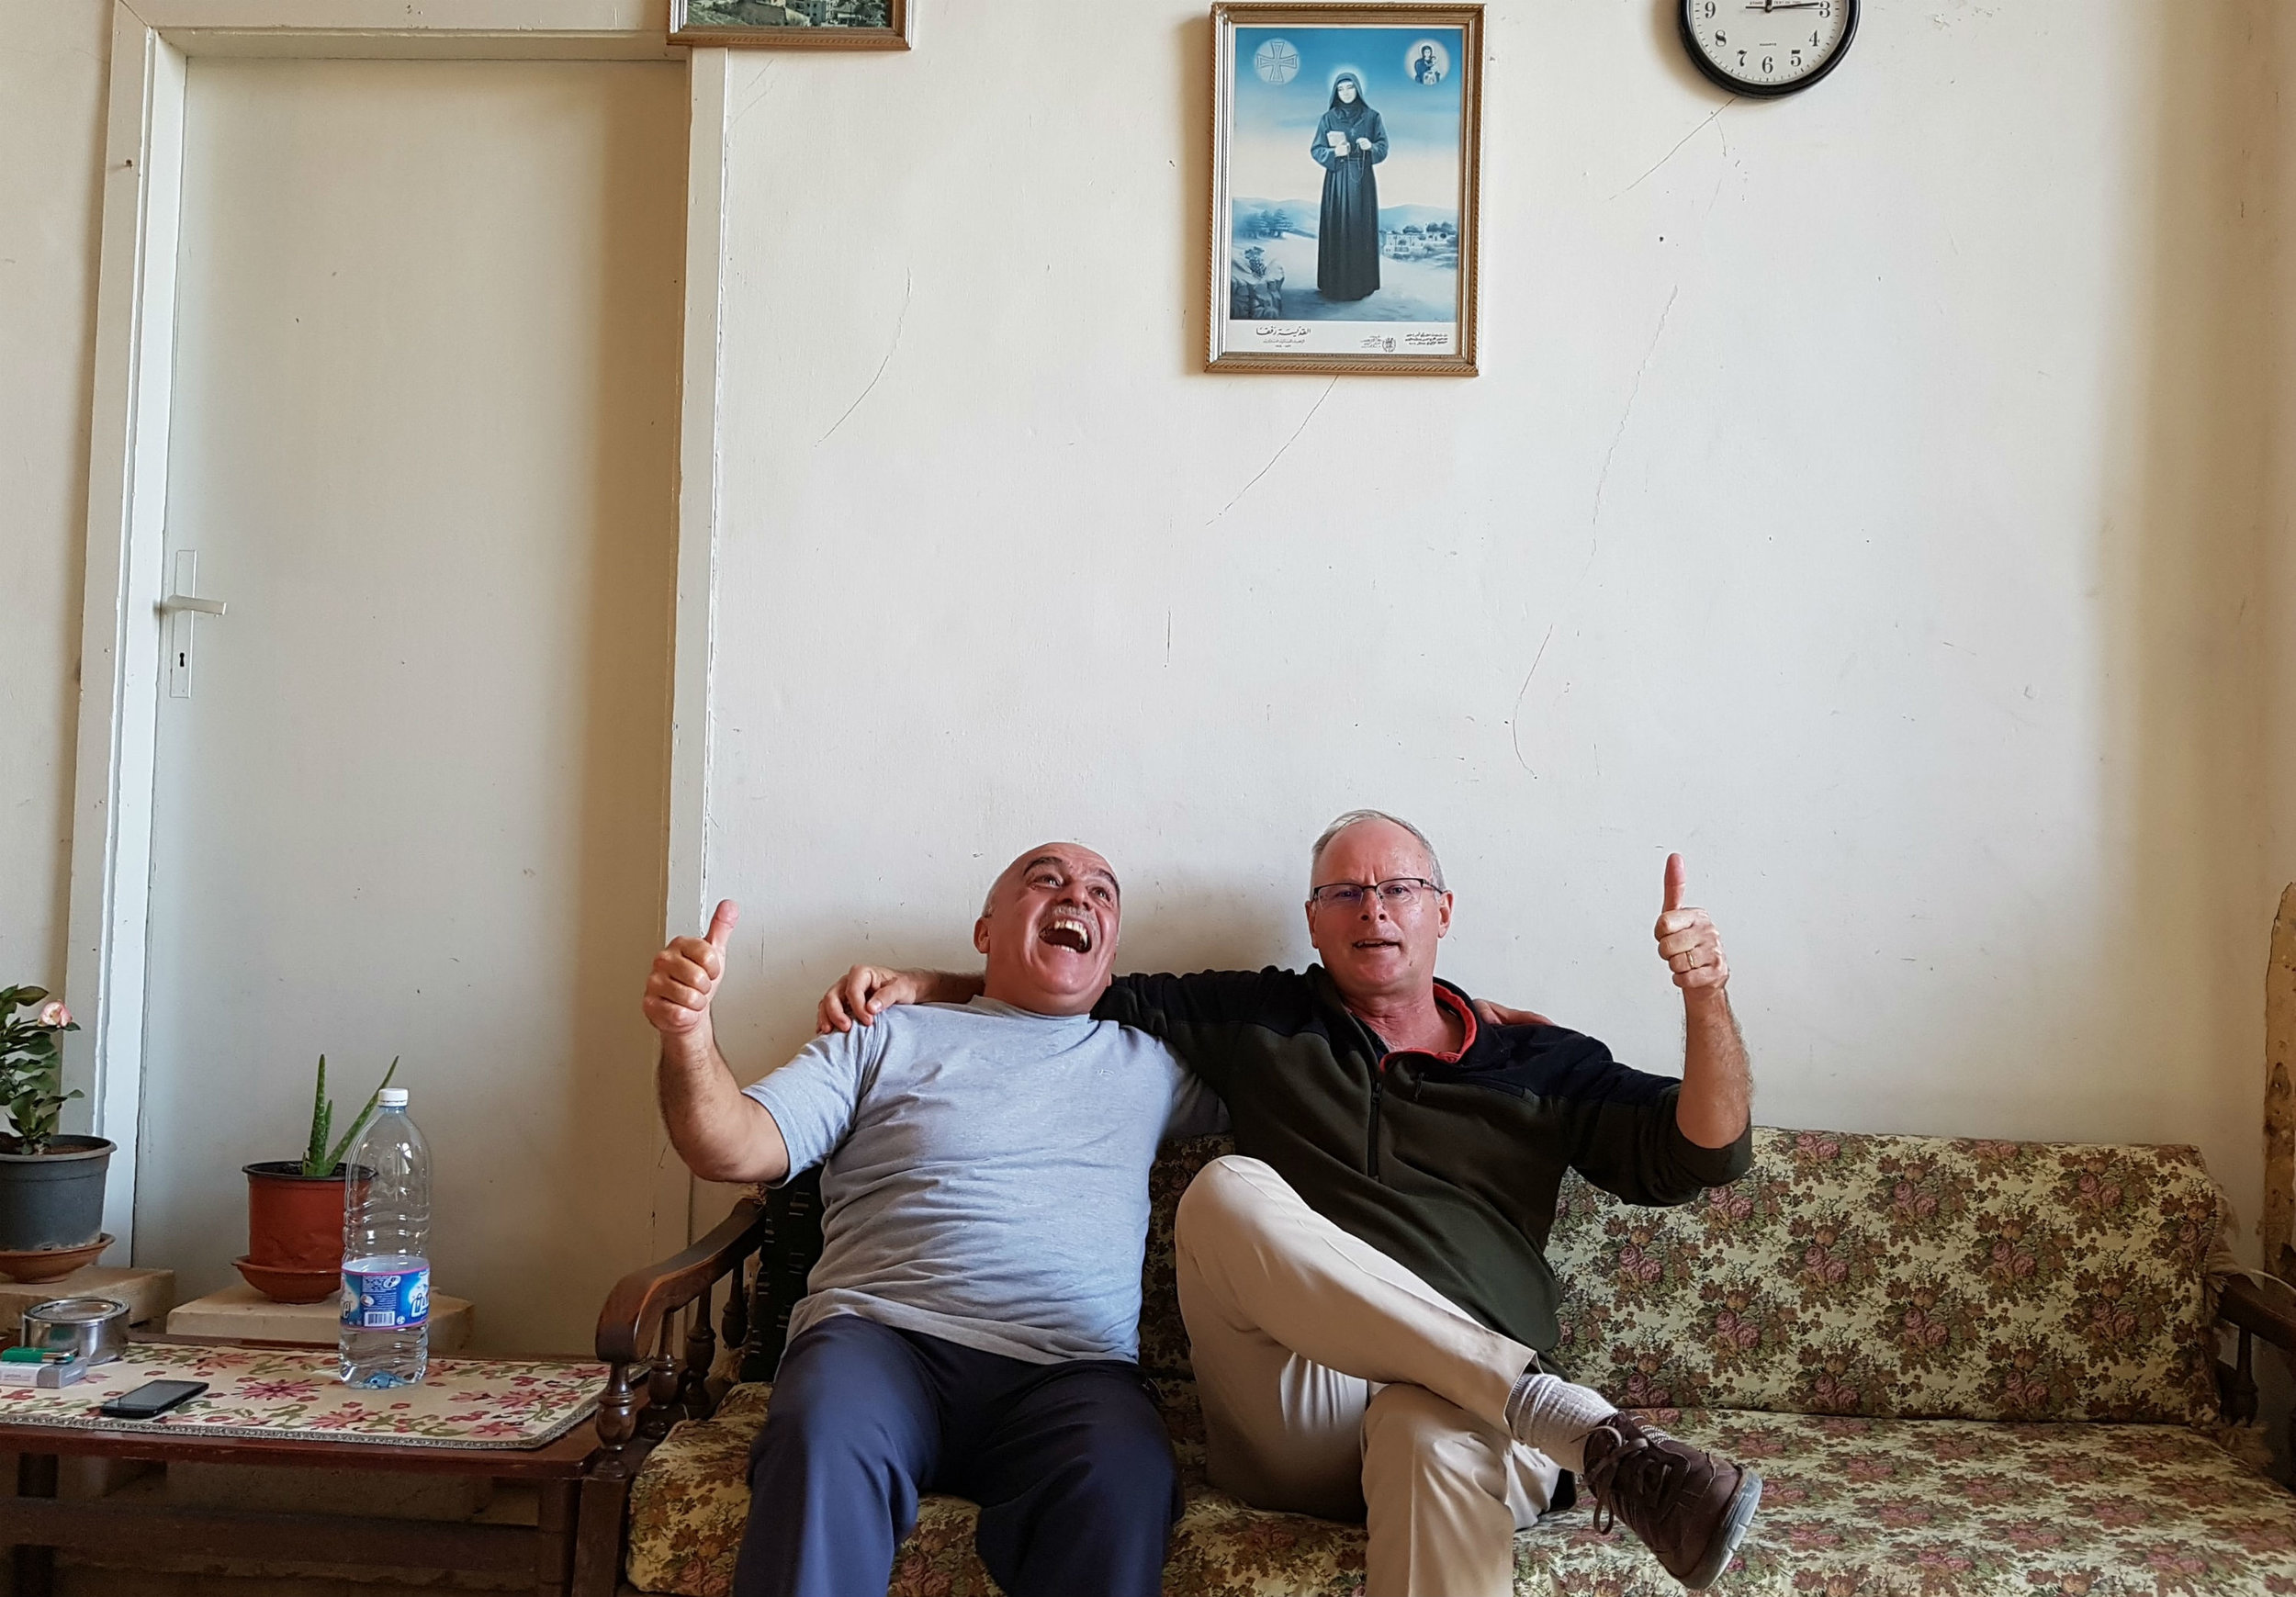 Abdu enjoying our visit in his home...